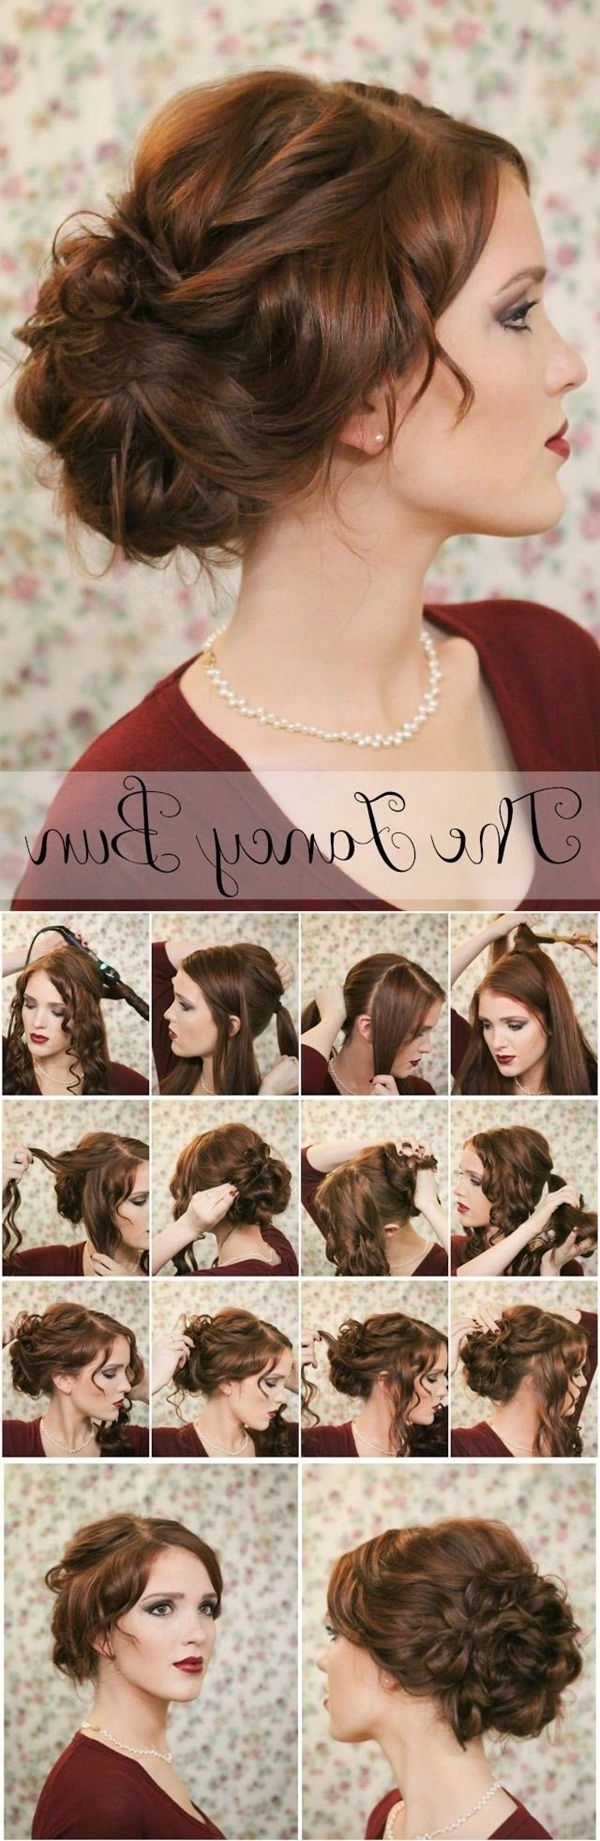 Popular Diy Wedding Hairstyles For Long Hair Throughout 20 Diy Wedding Hairstyles With Tutorials To Try On Your Own (View 10 of 15)